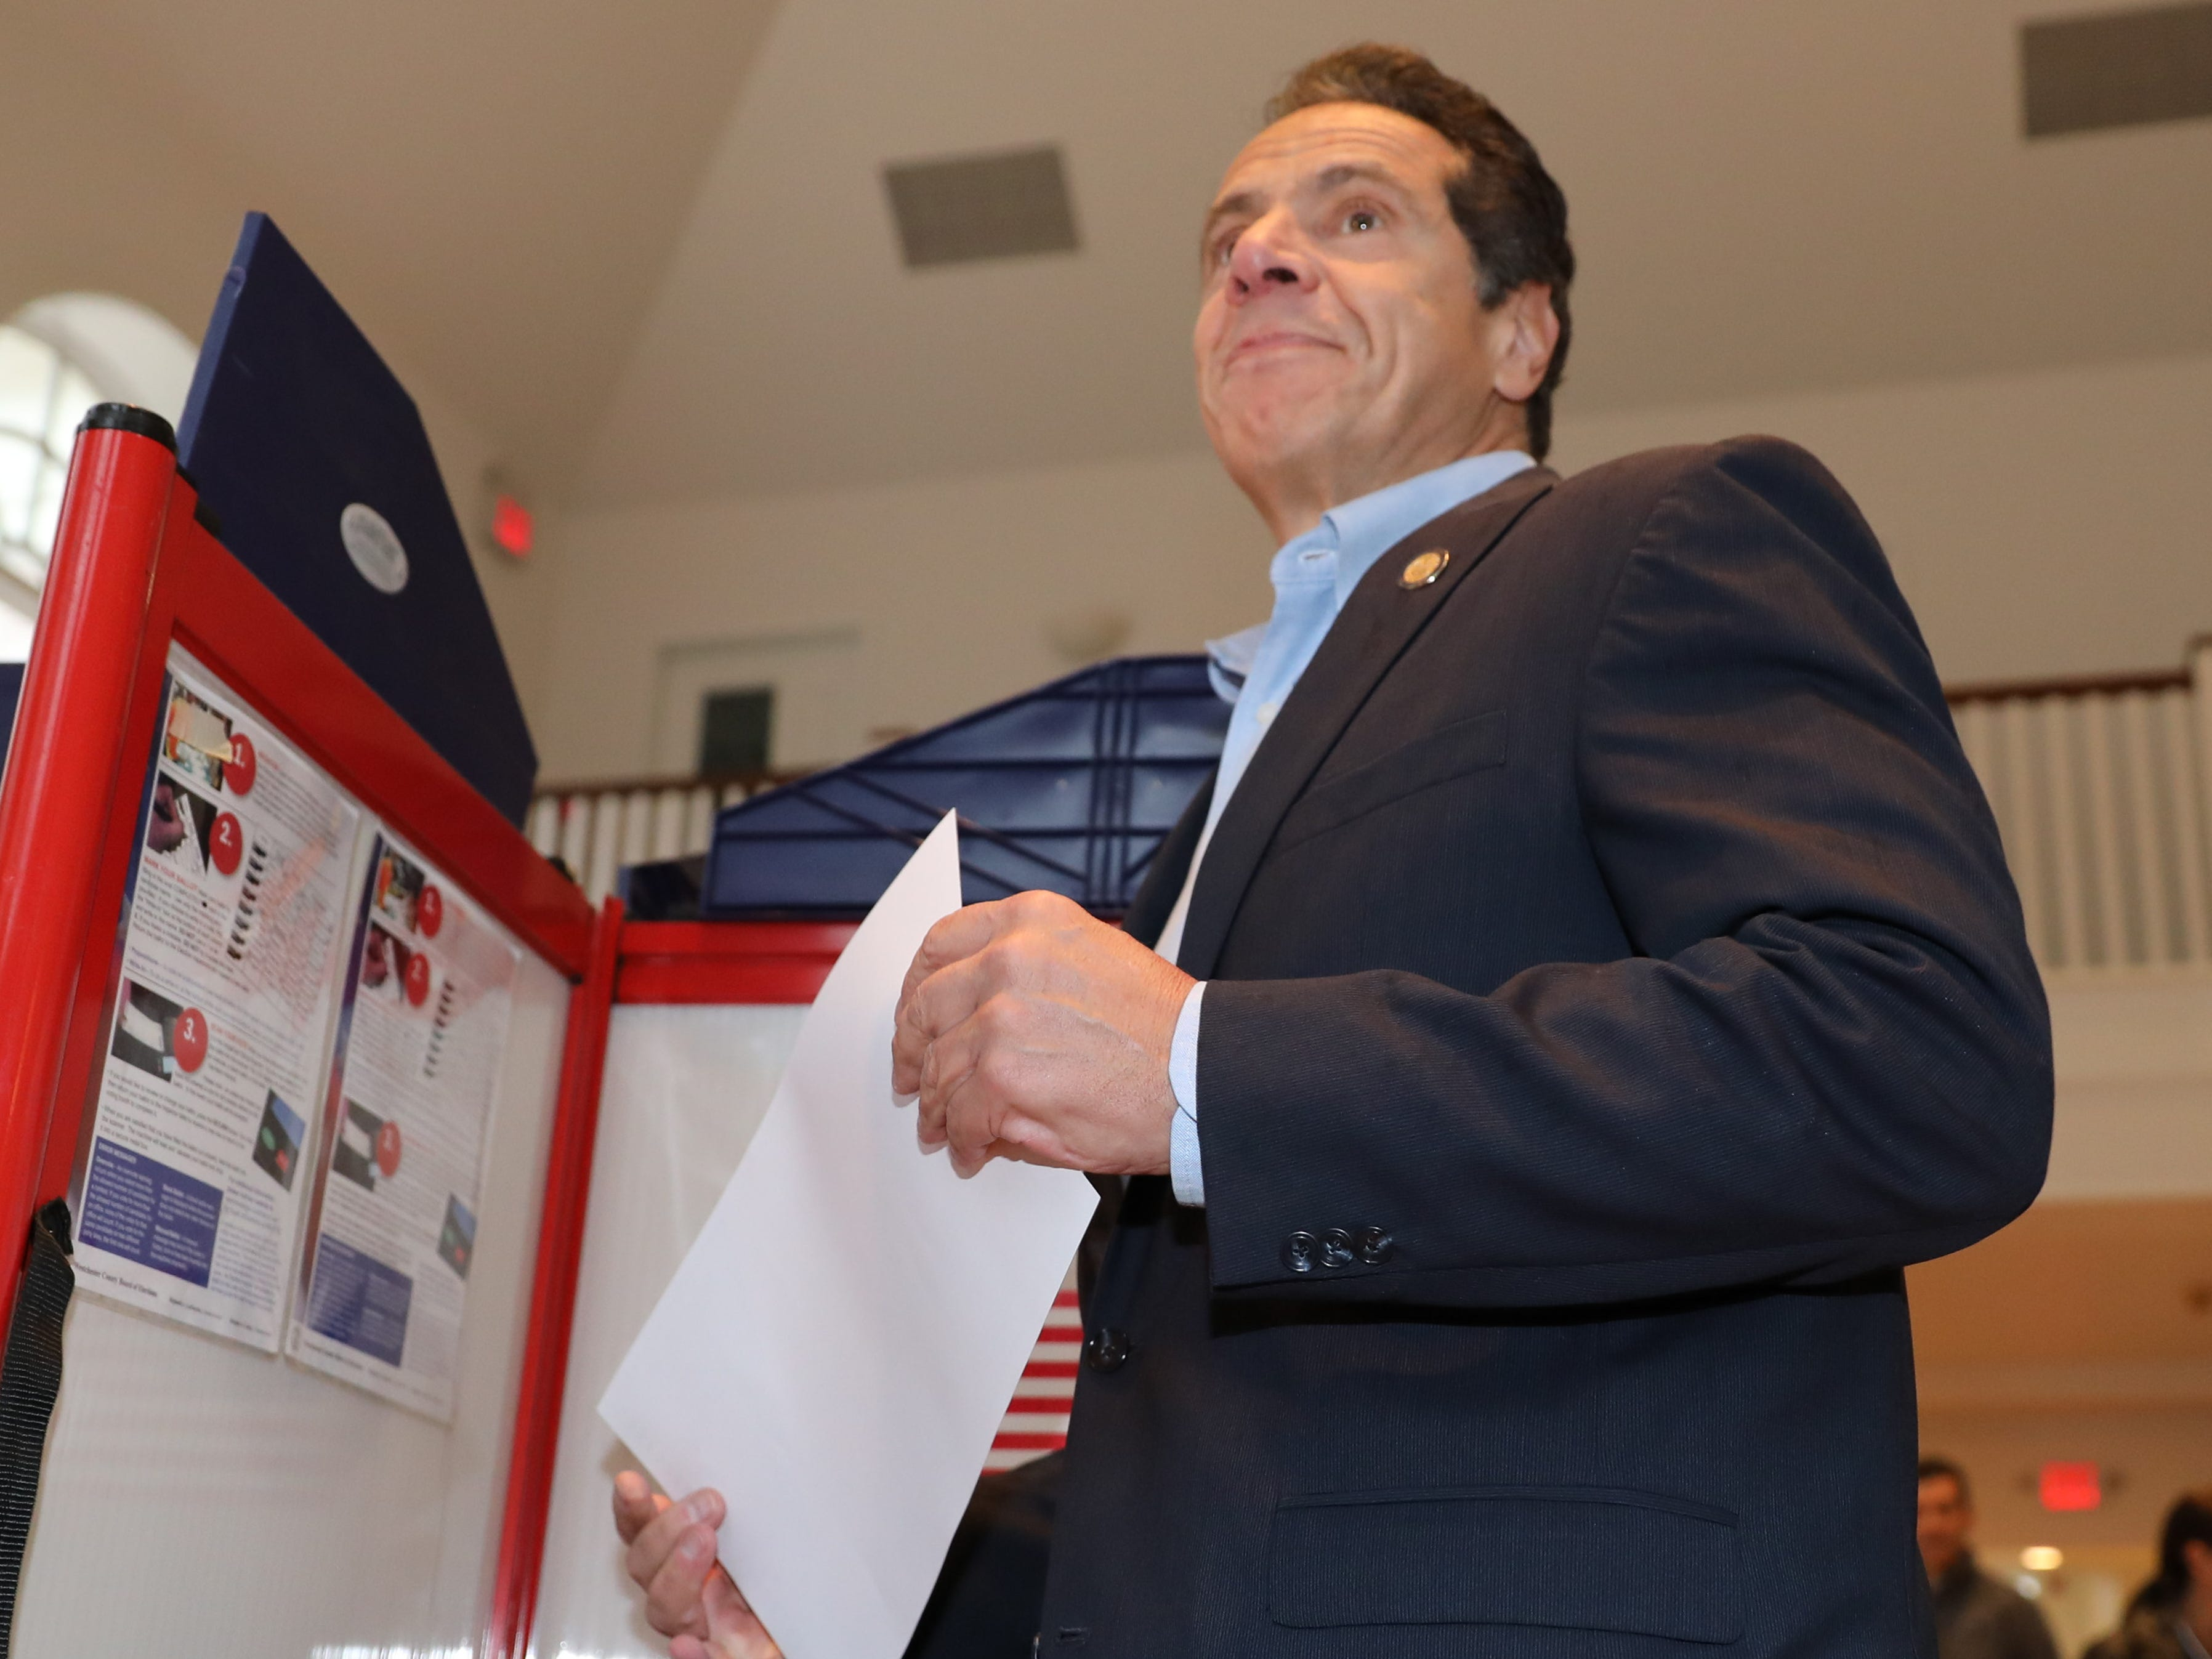 New York Gov. Andrew Cuomo heads toward a privacy table as he prepares to vote Tuesday at the Presbyterian Church of Mount Kisco.